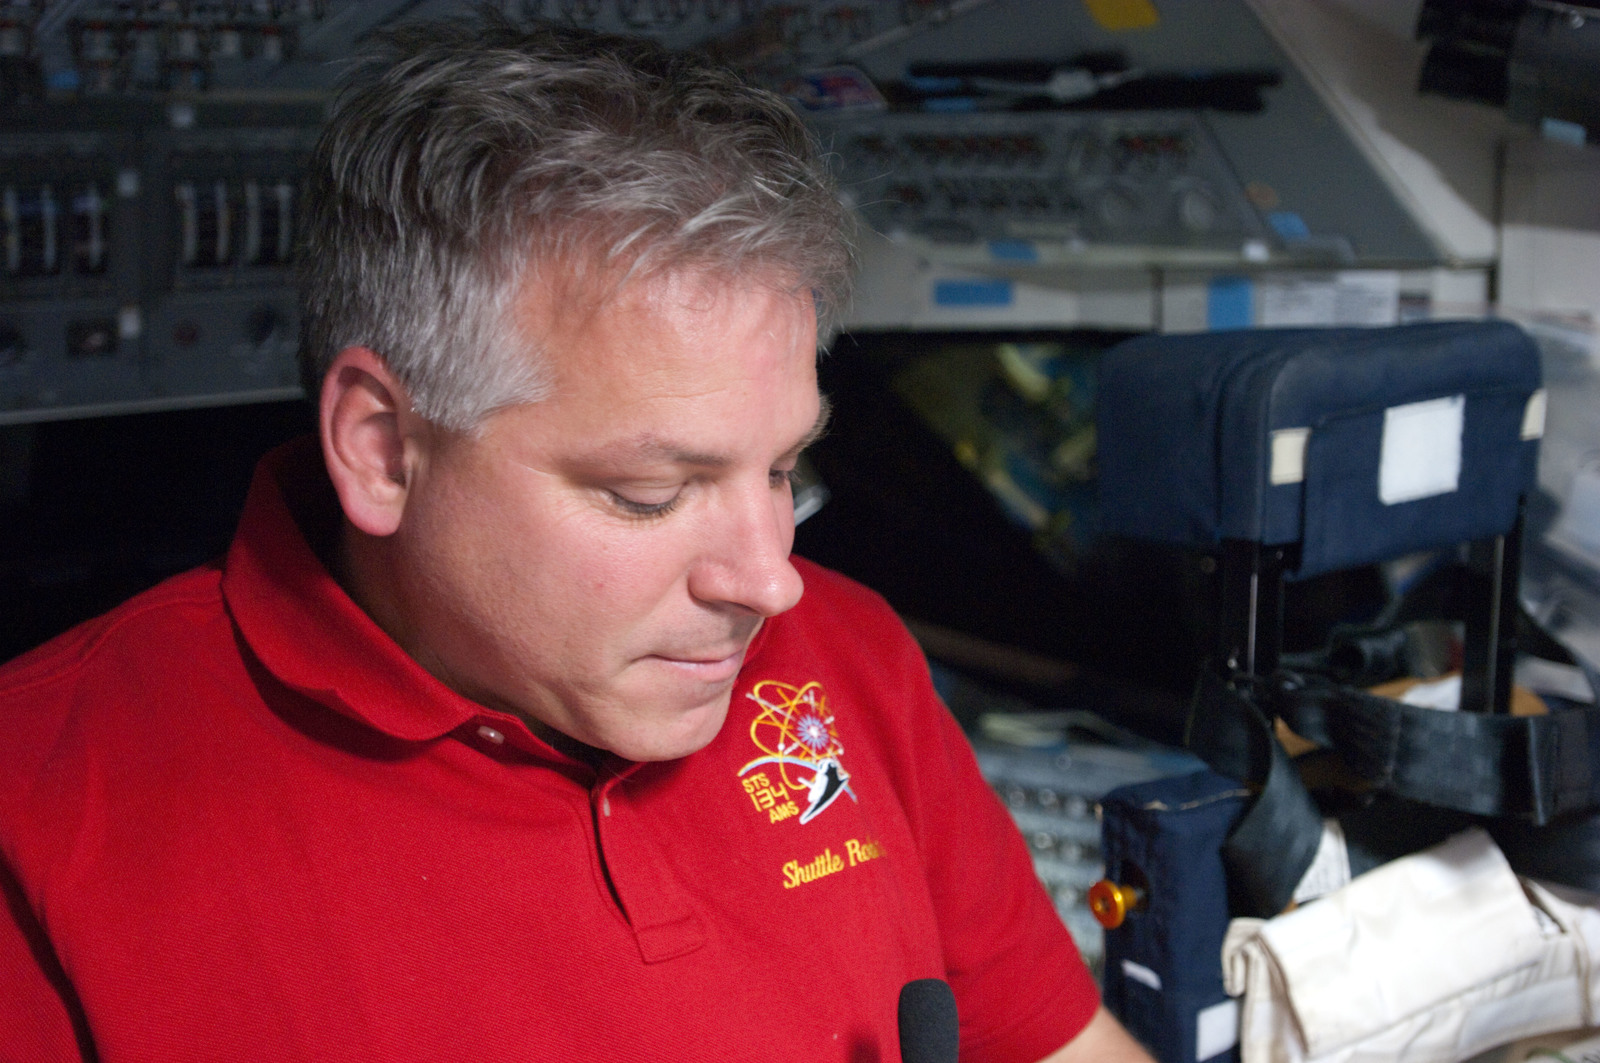 S134E009335 - STS-134 - View of STS-134 Pilot Johnson working on the Flight Deck